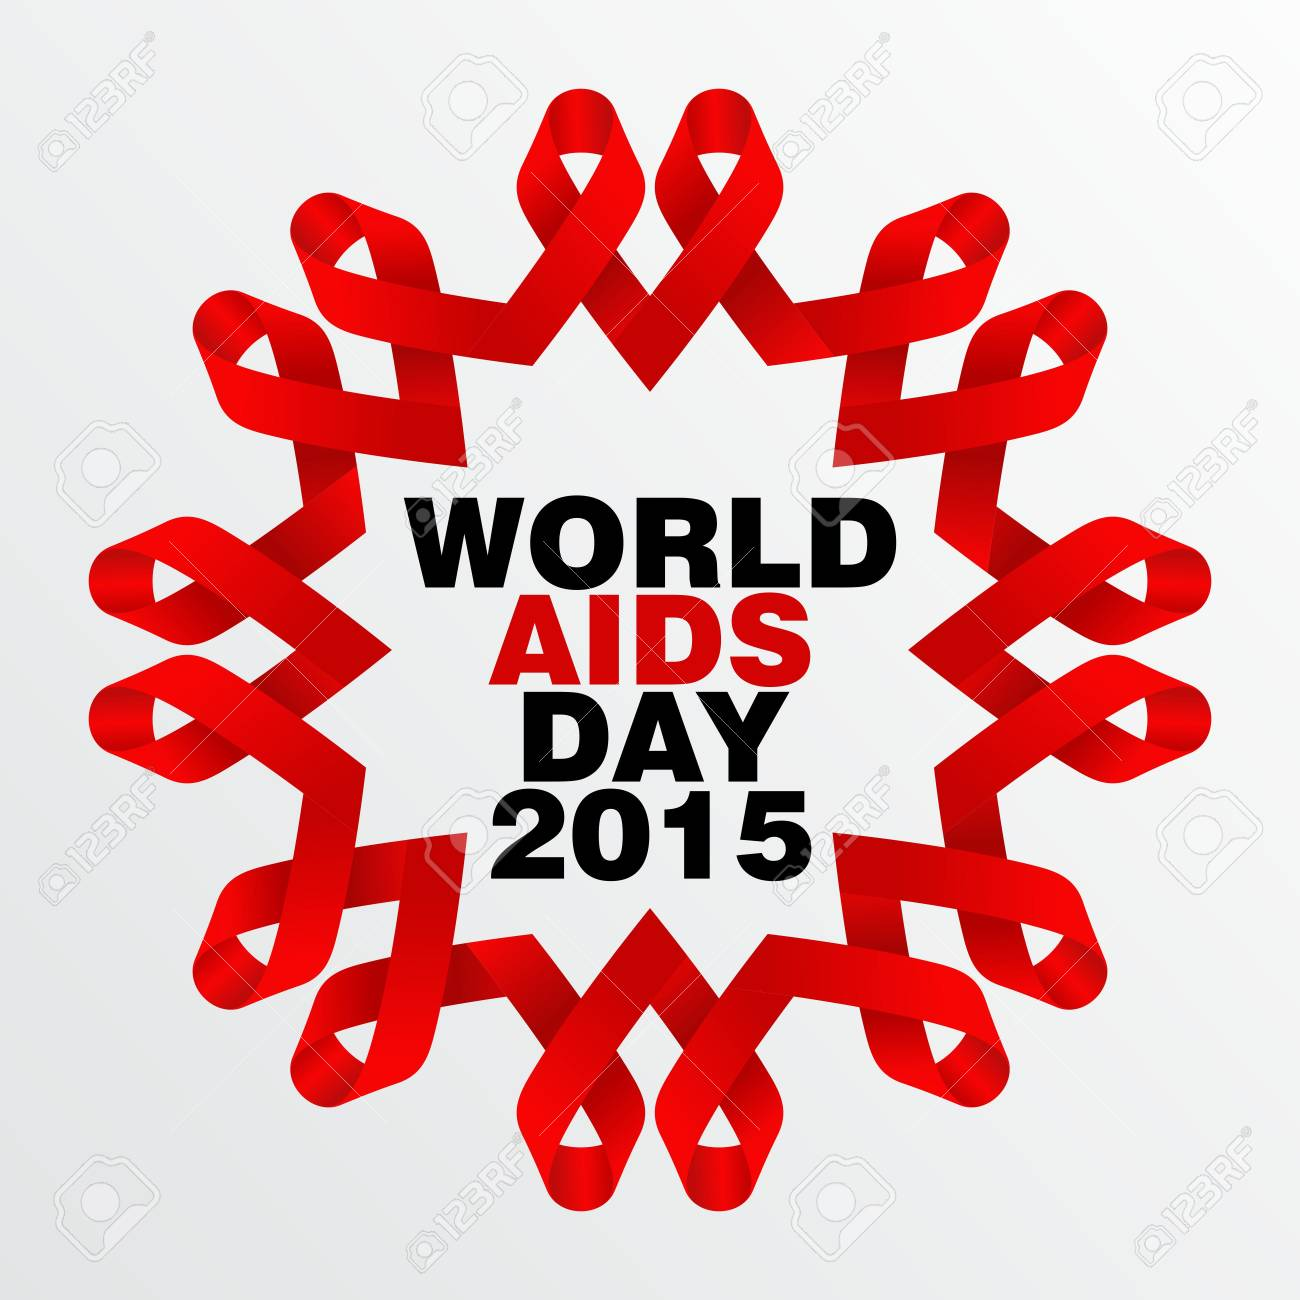 Inspirational Message Of The Day World Aids Day Poster And Quotes Inspirational Message Stock